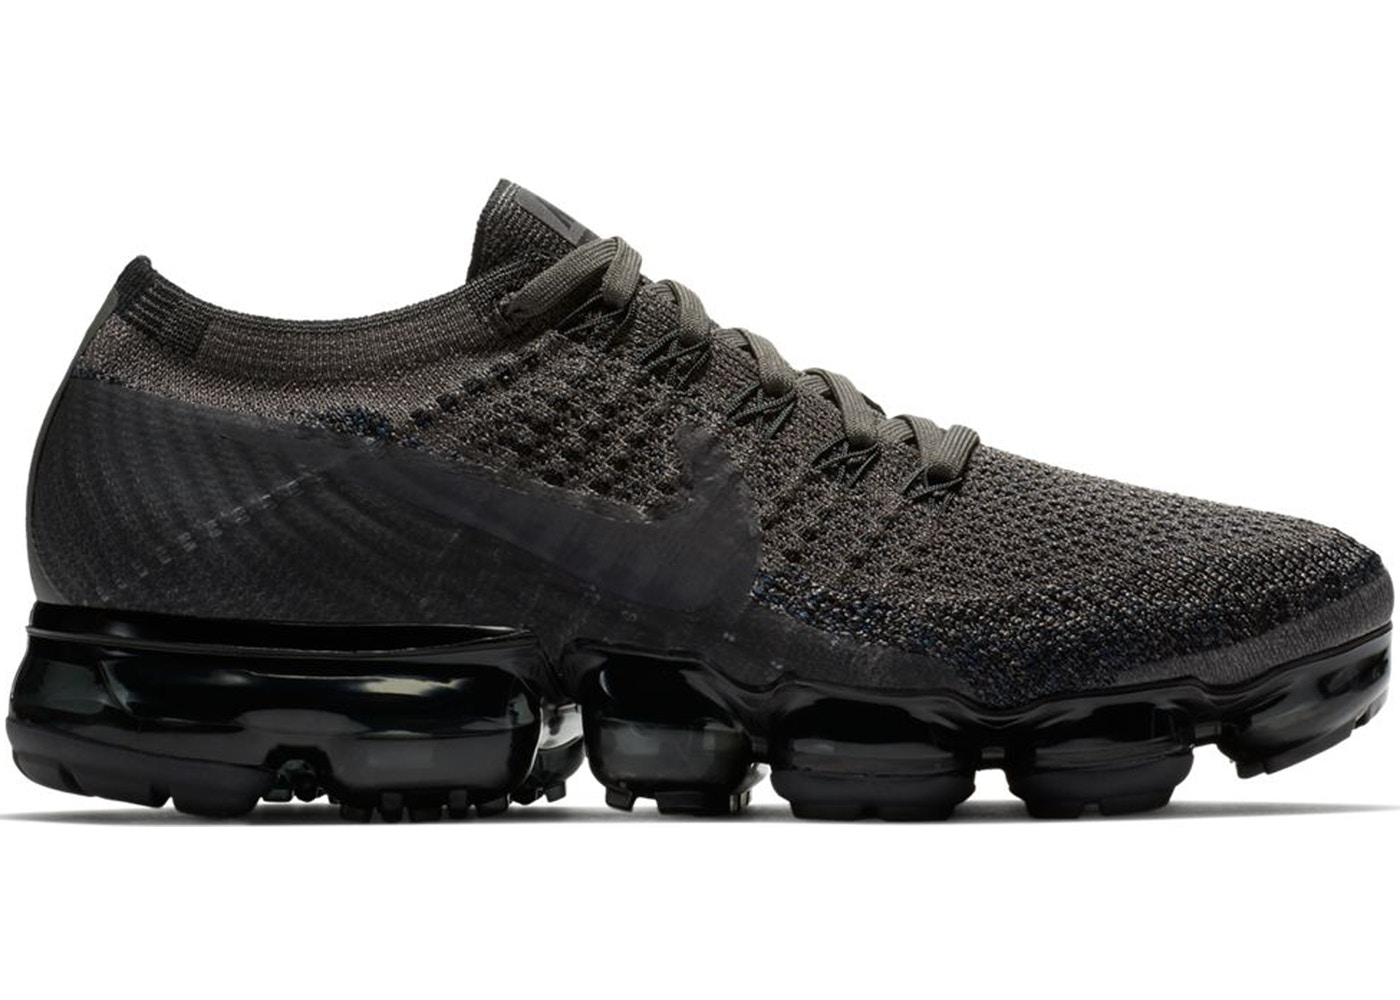 e1808c642a048 Air VaporMax Midnight Fog - 849558-009